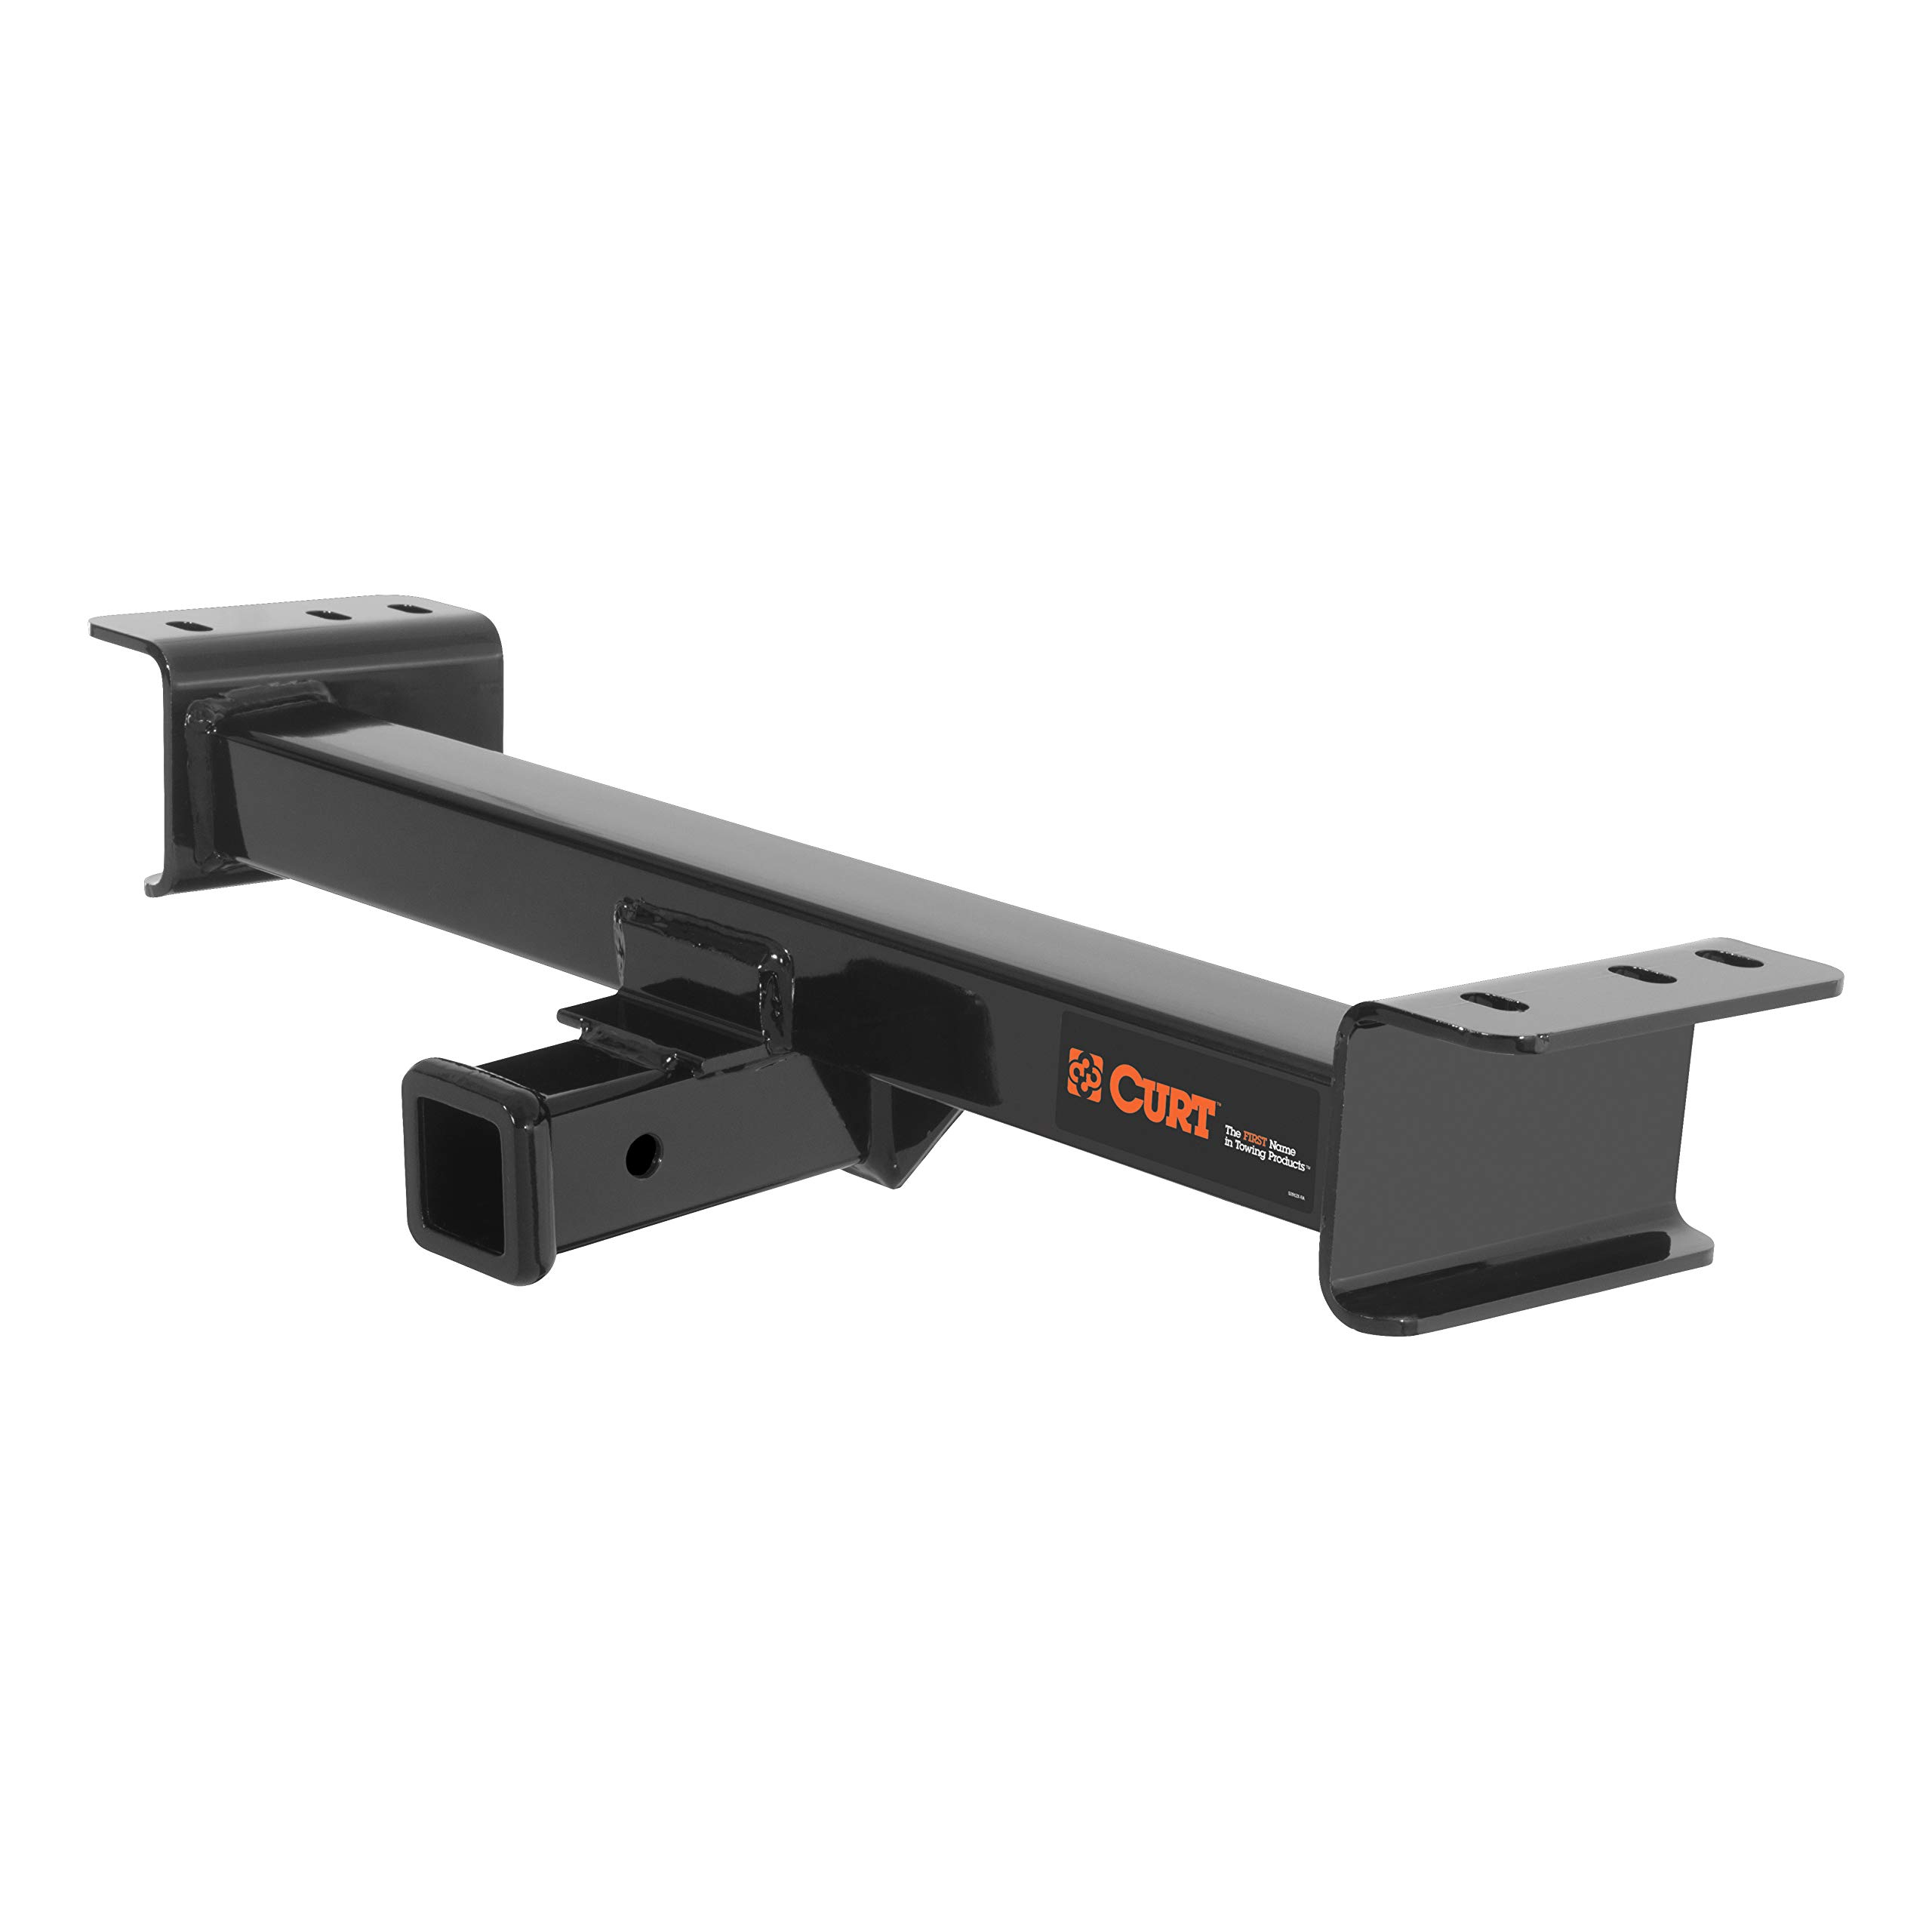 CURT 31042 Front Hitch with 2-Inch Receiver, Fits Select Chevrolet and GMC Trucks and SUVs by CURT